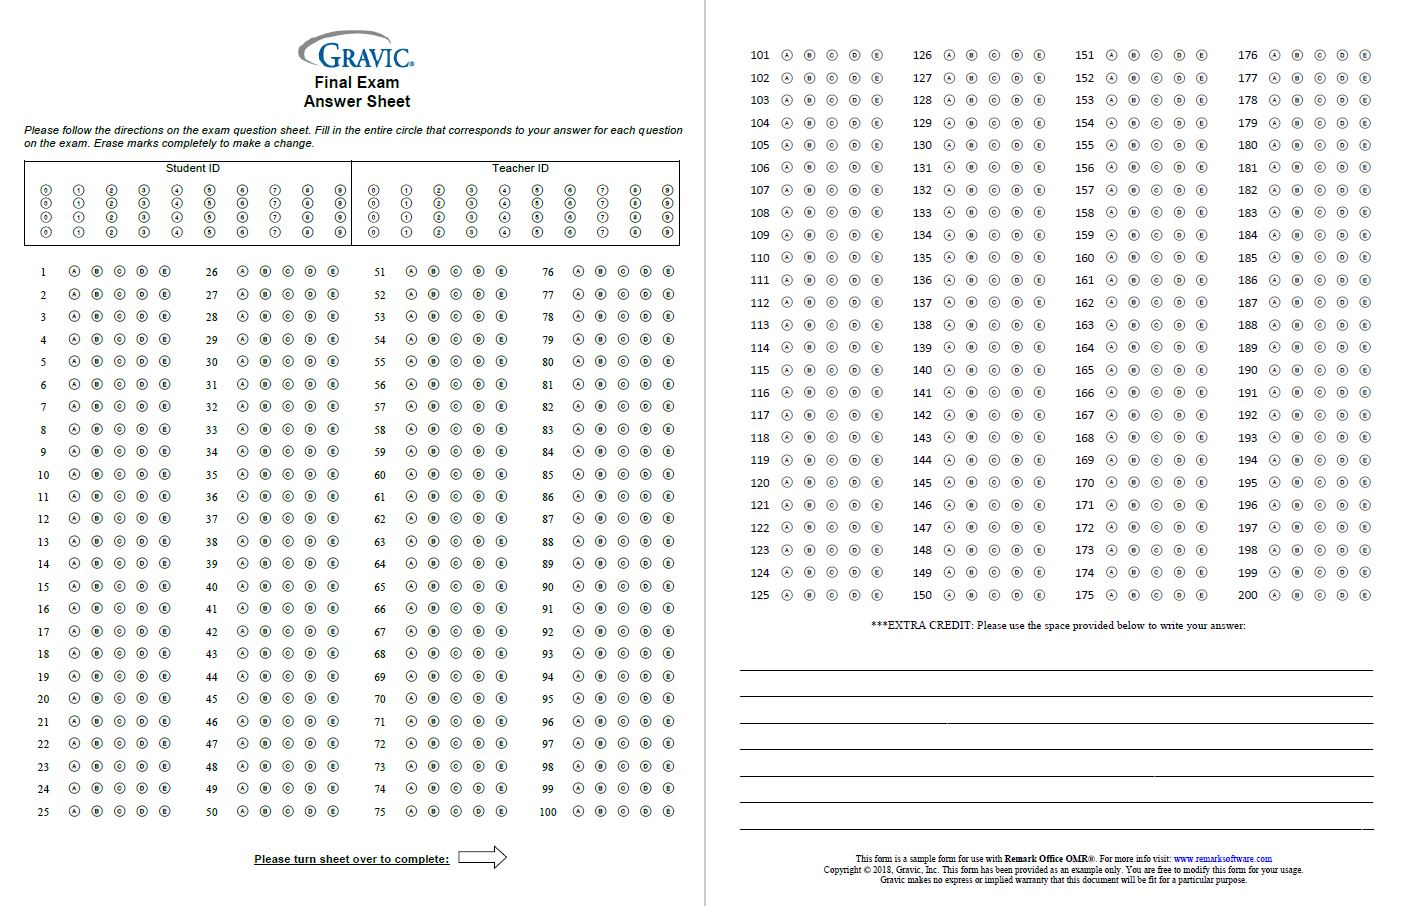 photograph regarding Printable Scantron Form named 200 Marvel Verify Remedy Sheet with More Credit score and Grid Identification